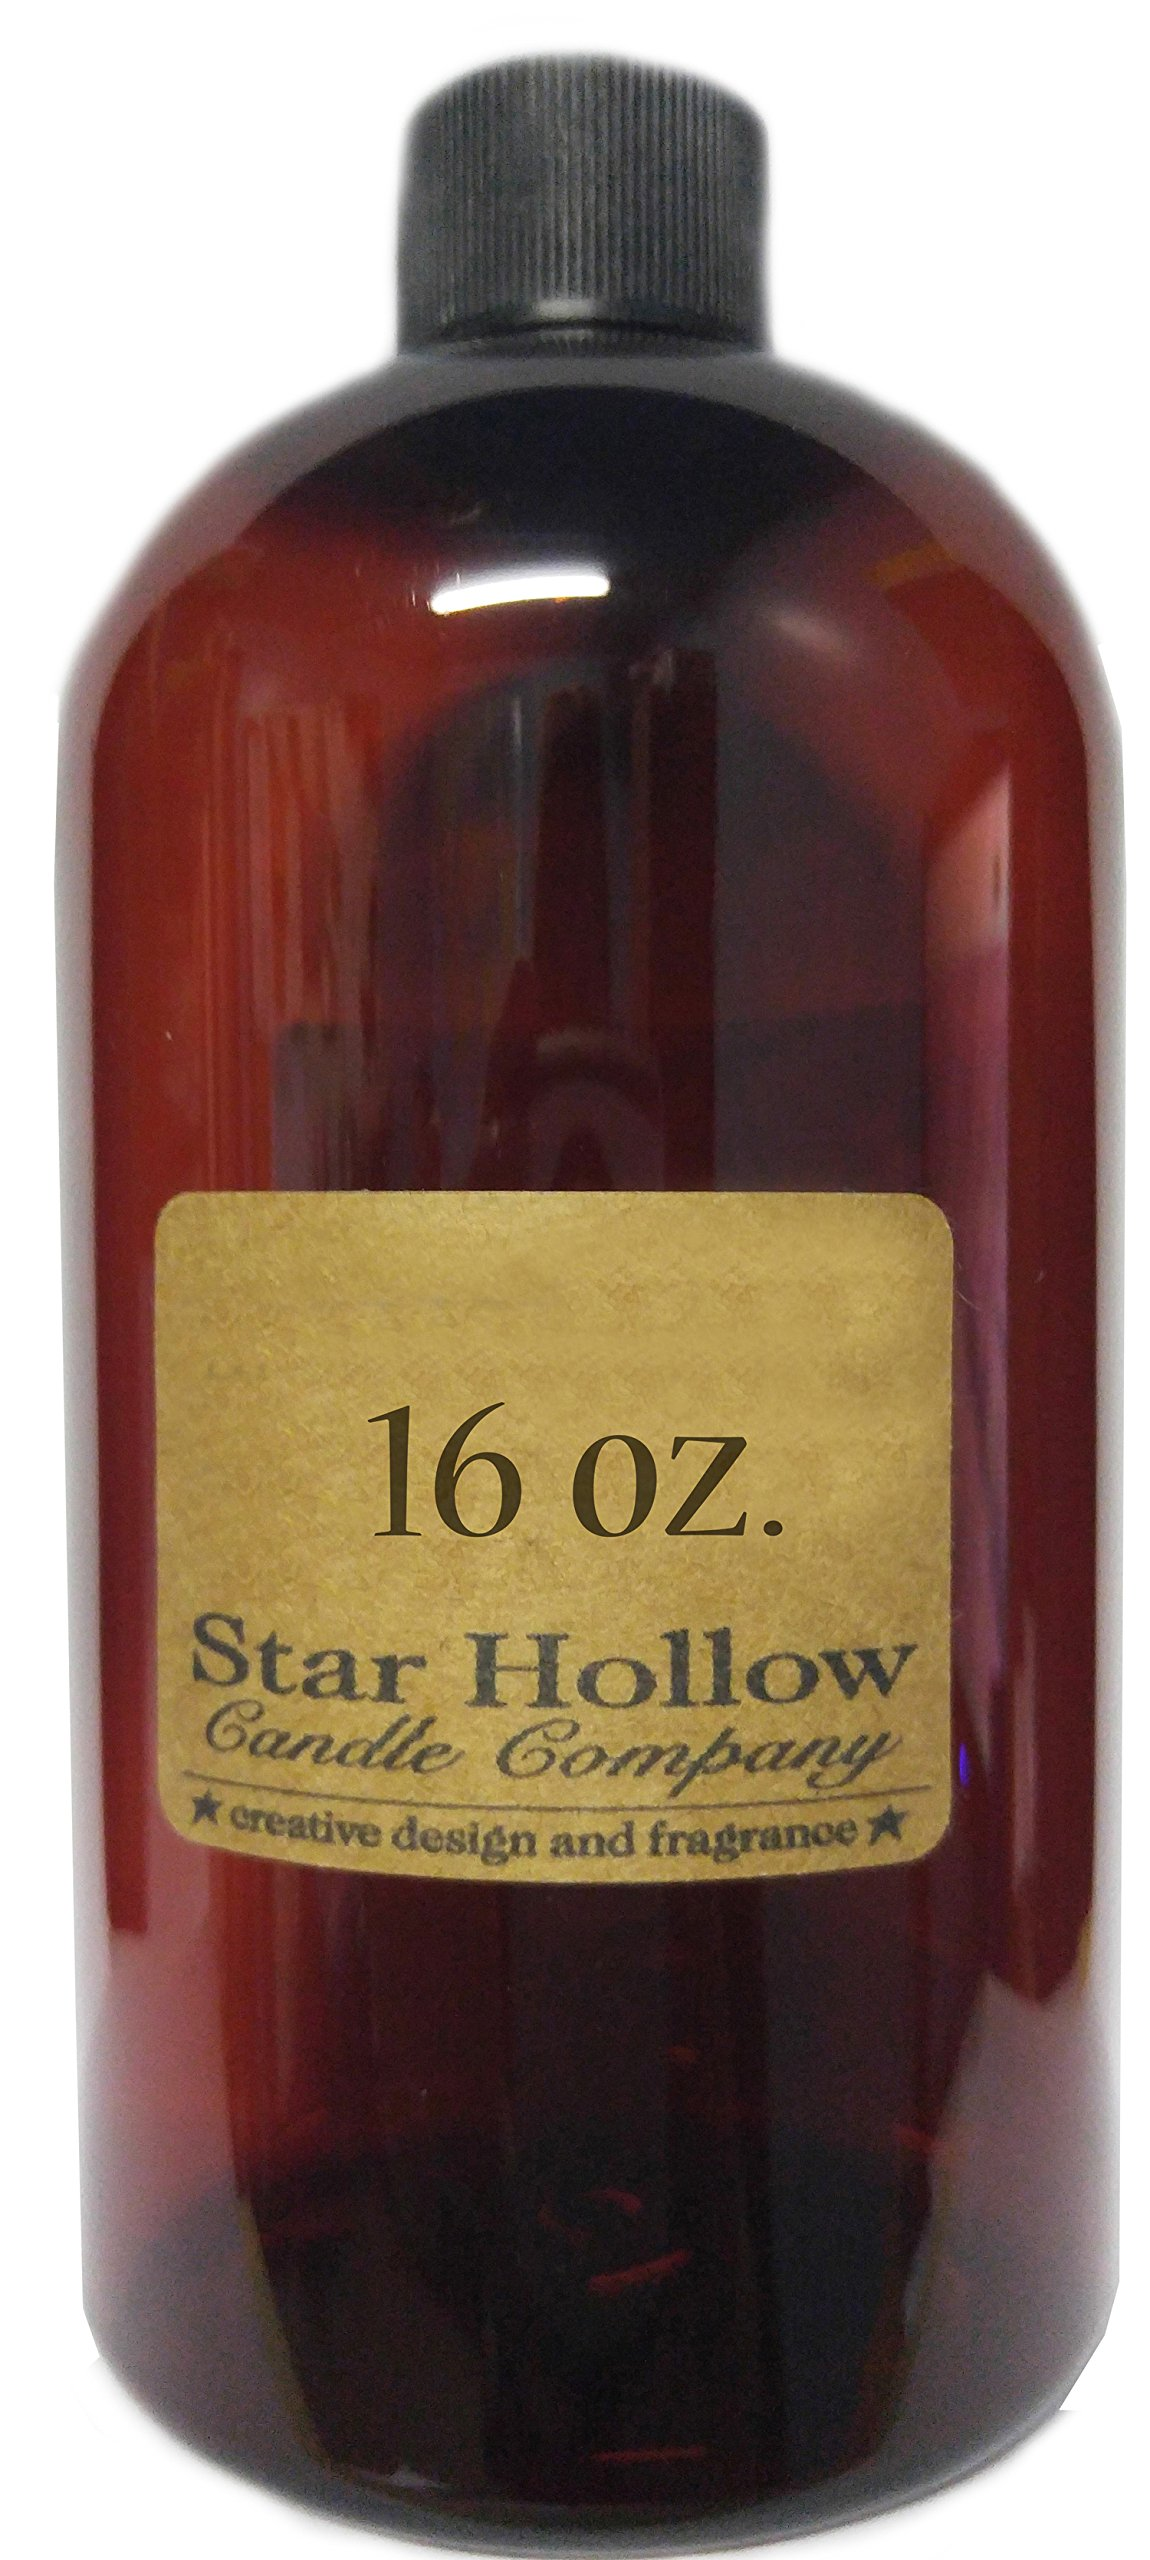 Star Hollow Candle Buttery Maple Syrup Fragrance Oil, 16 oz, Brown